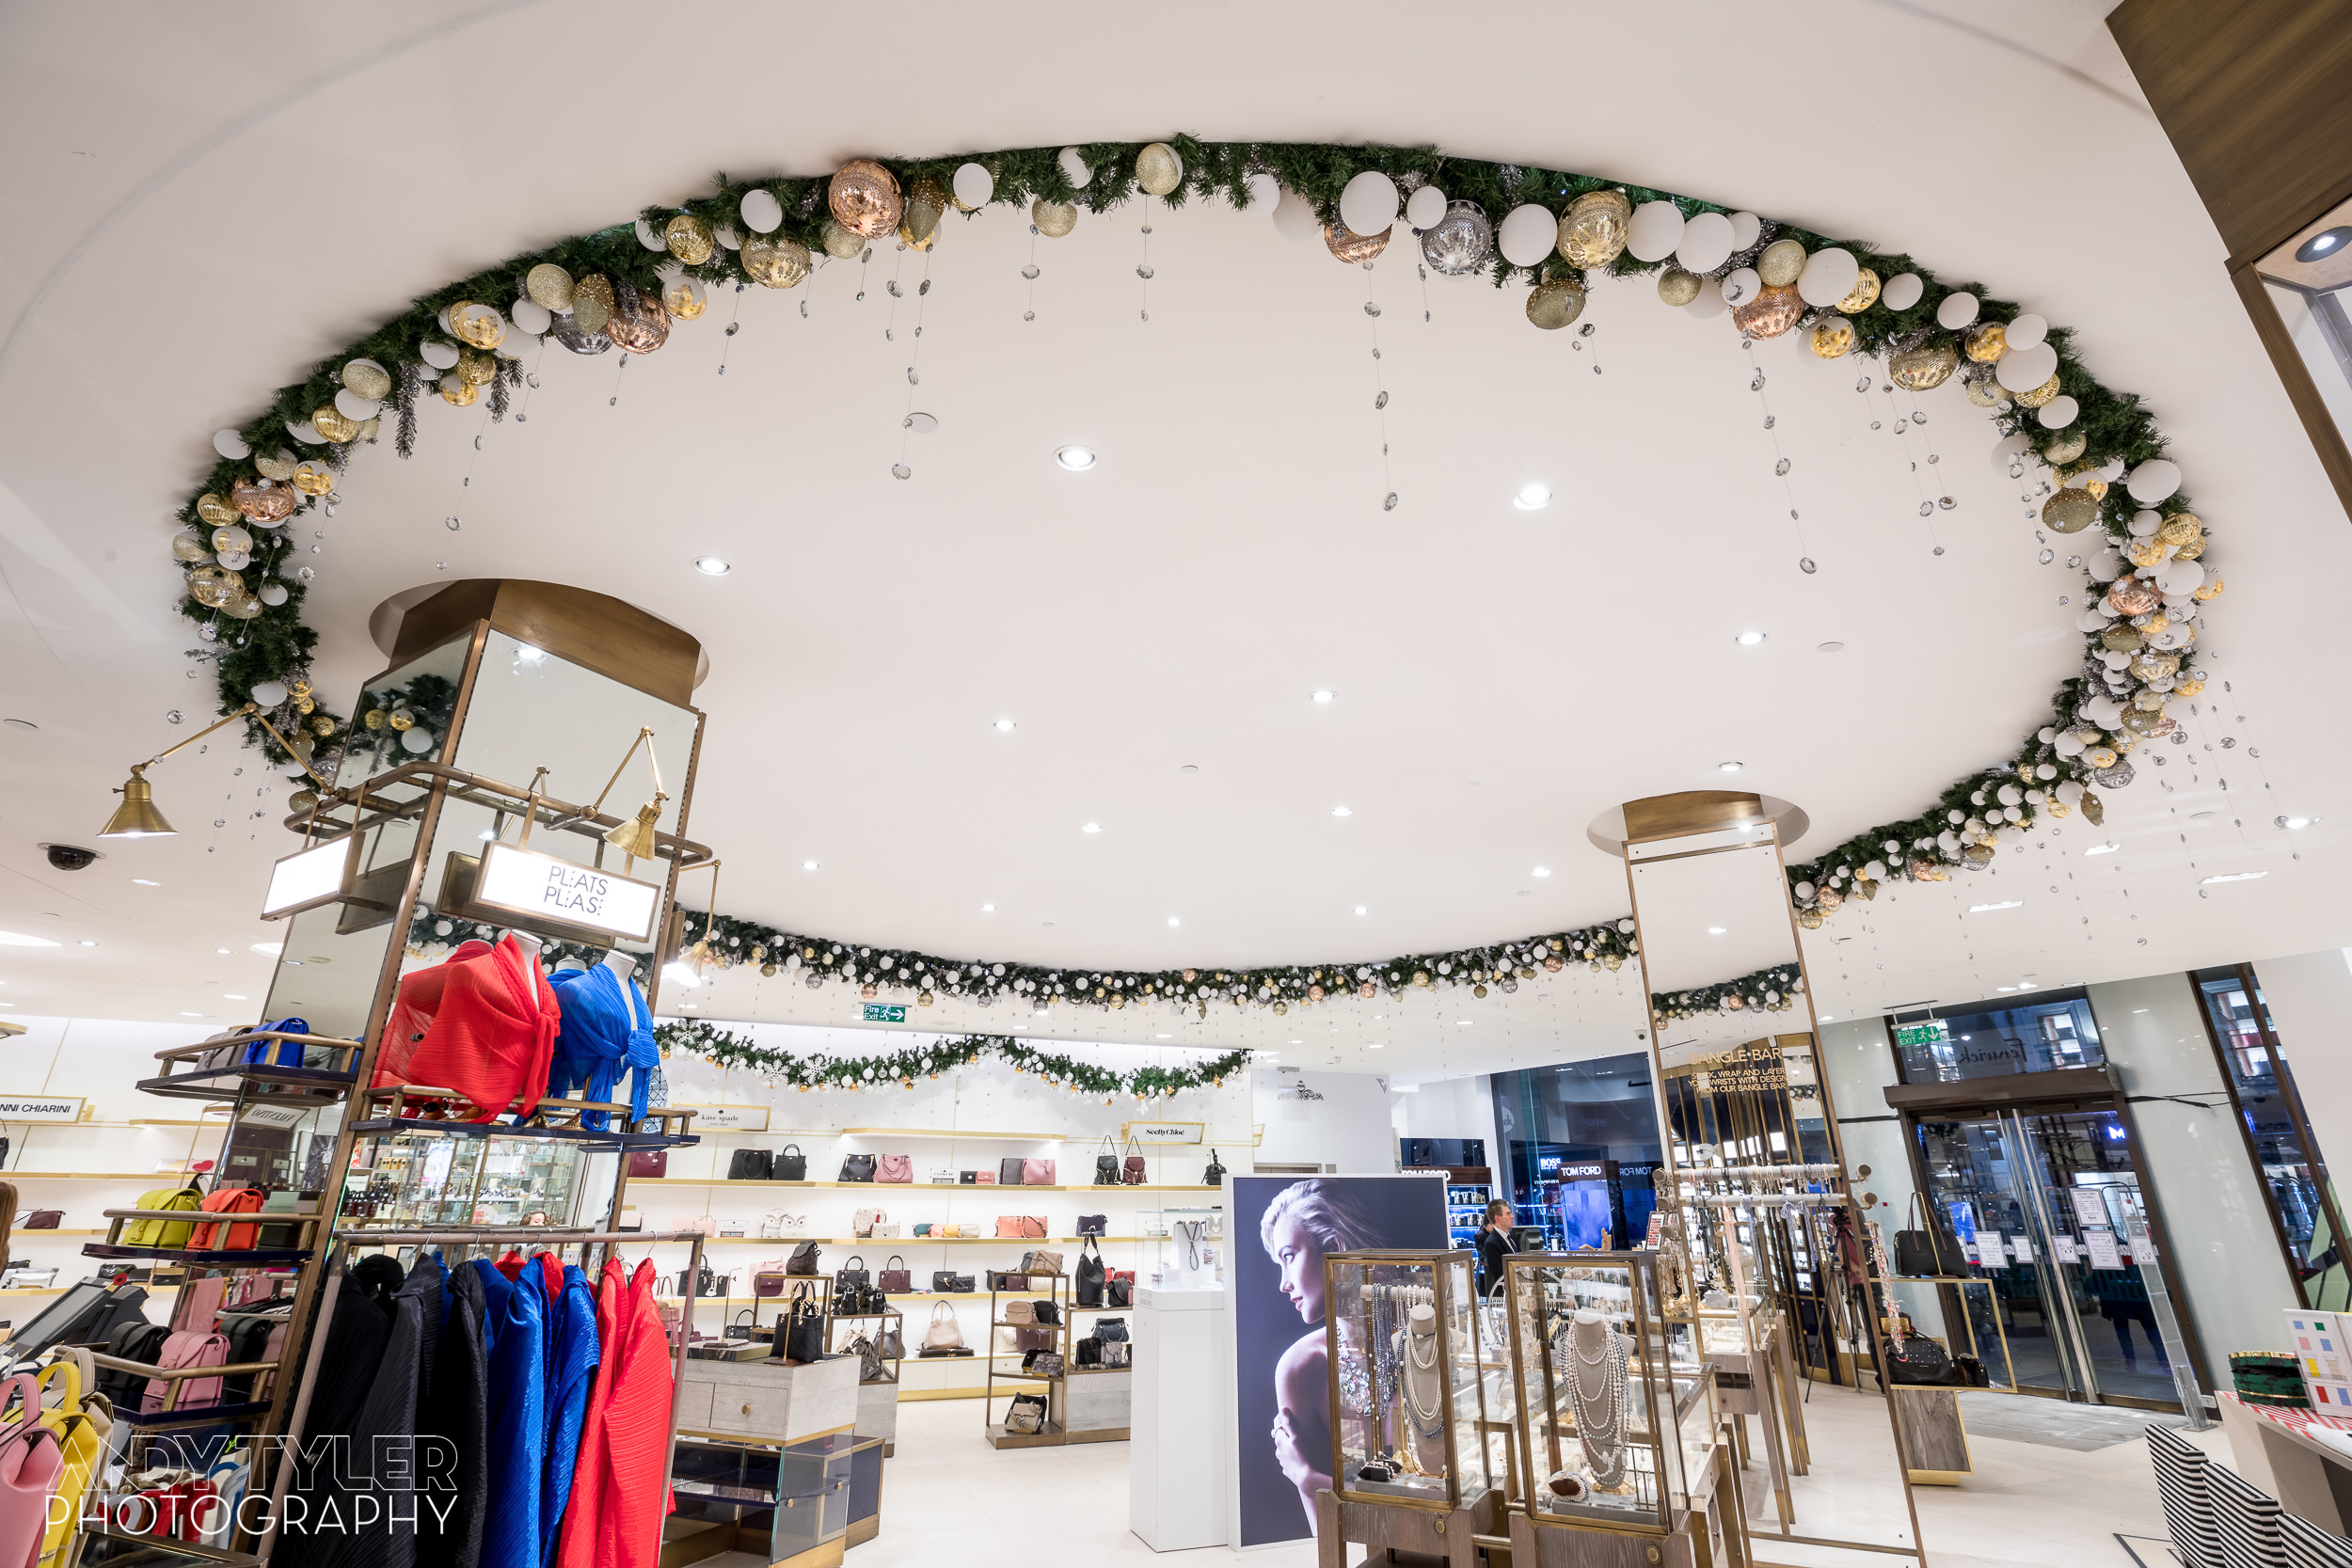 Andy_Tyler_Photography_Luxury_Retail_Interior_011_Andy_Tyler_Photography_102-5DB_7919.jpg